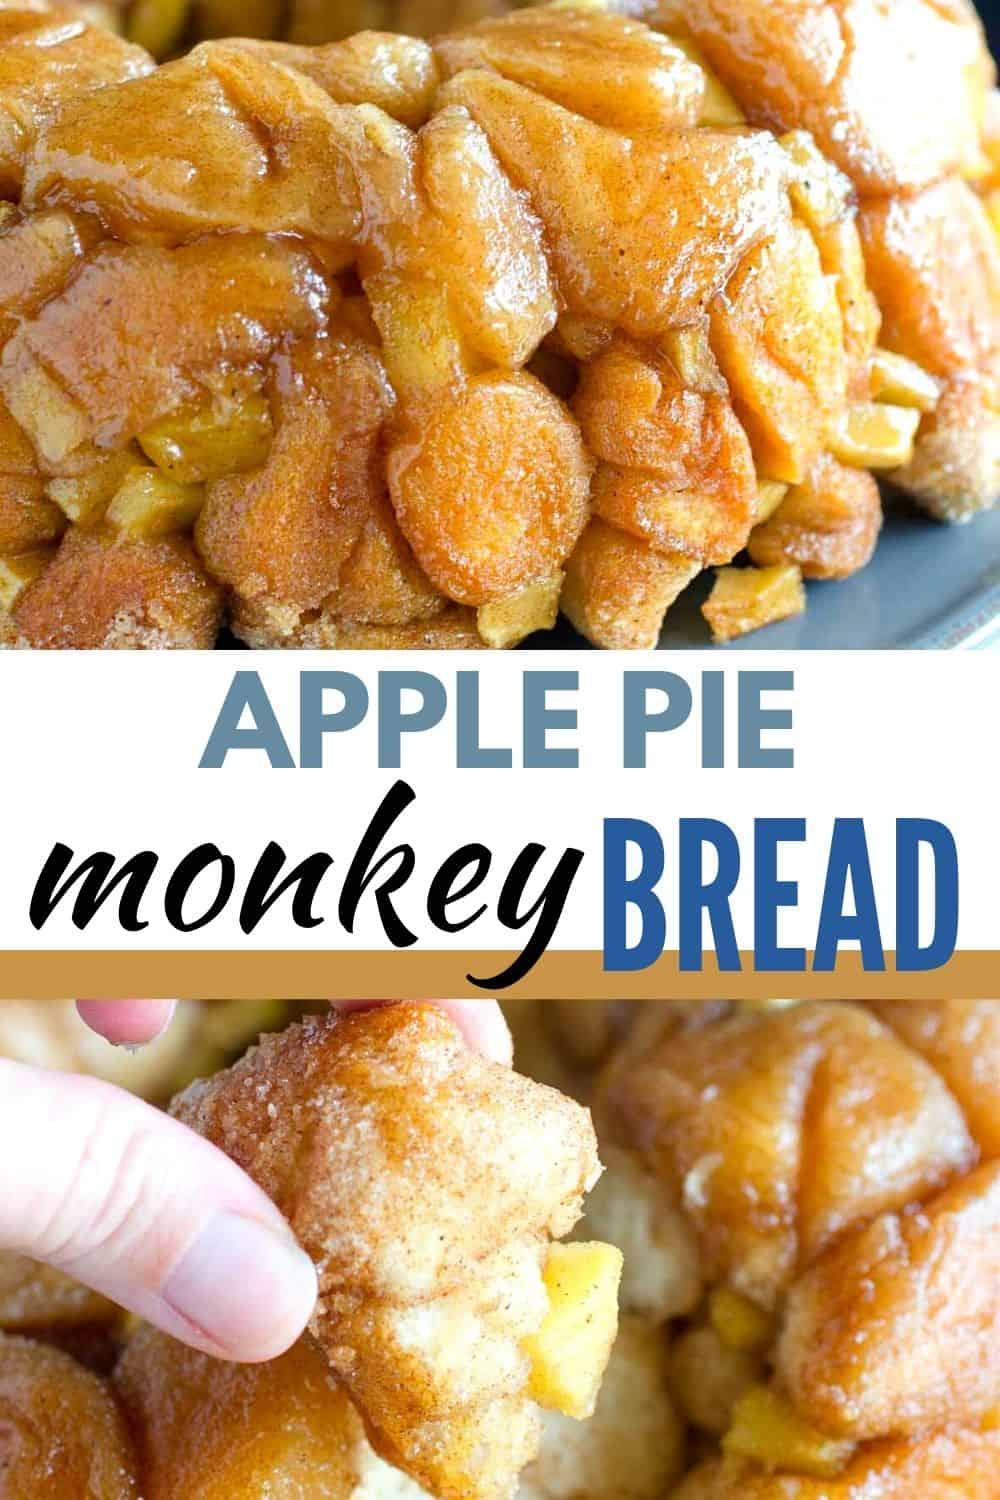 Try this apple pie monkey bread for breakfast or dessert. Use refrigerated biscuits and apple pie spices to make this easy monkey bread recipe!